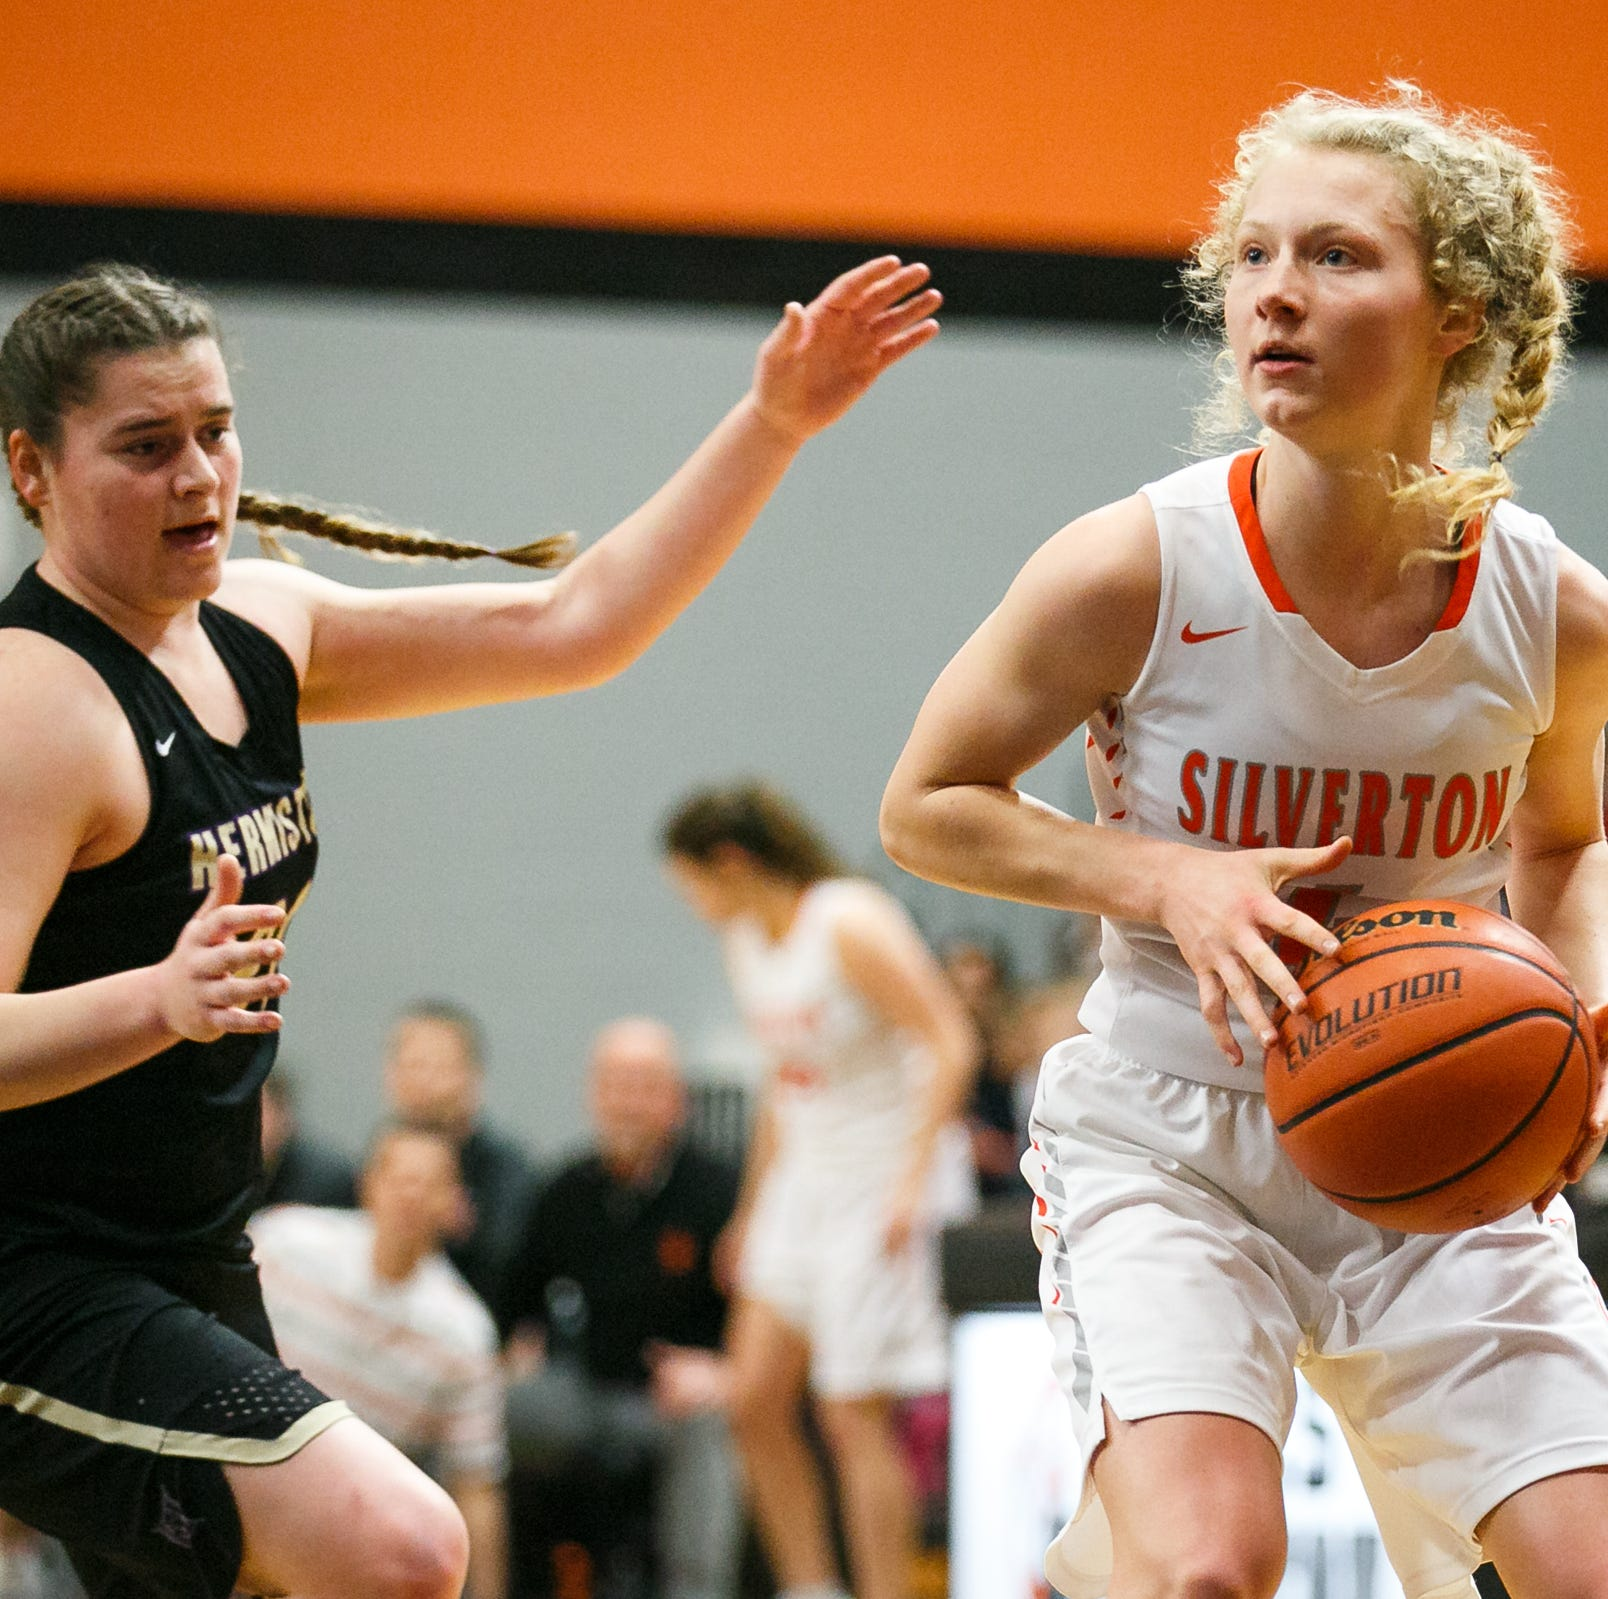 Silverton's Schmitz voted SJ Athlete of the Week